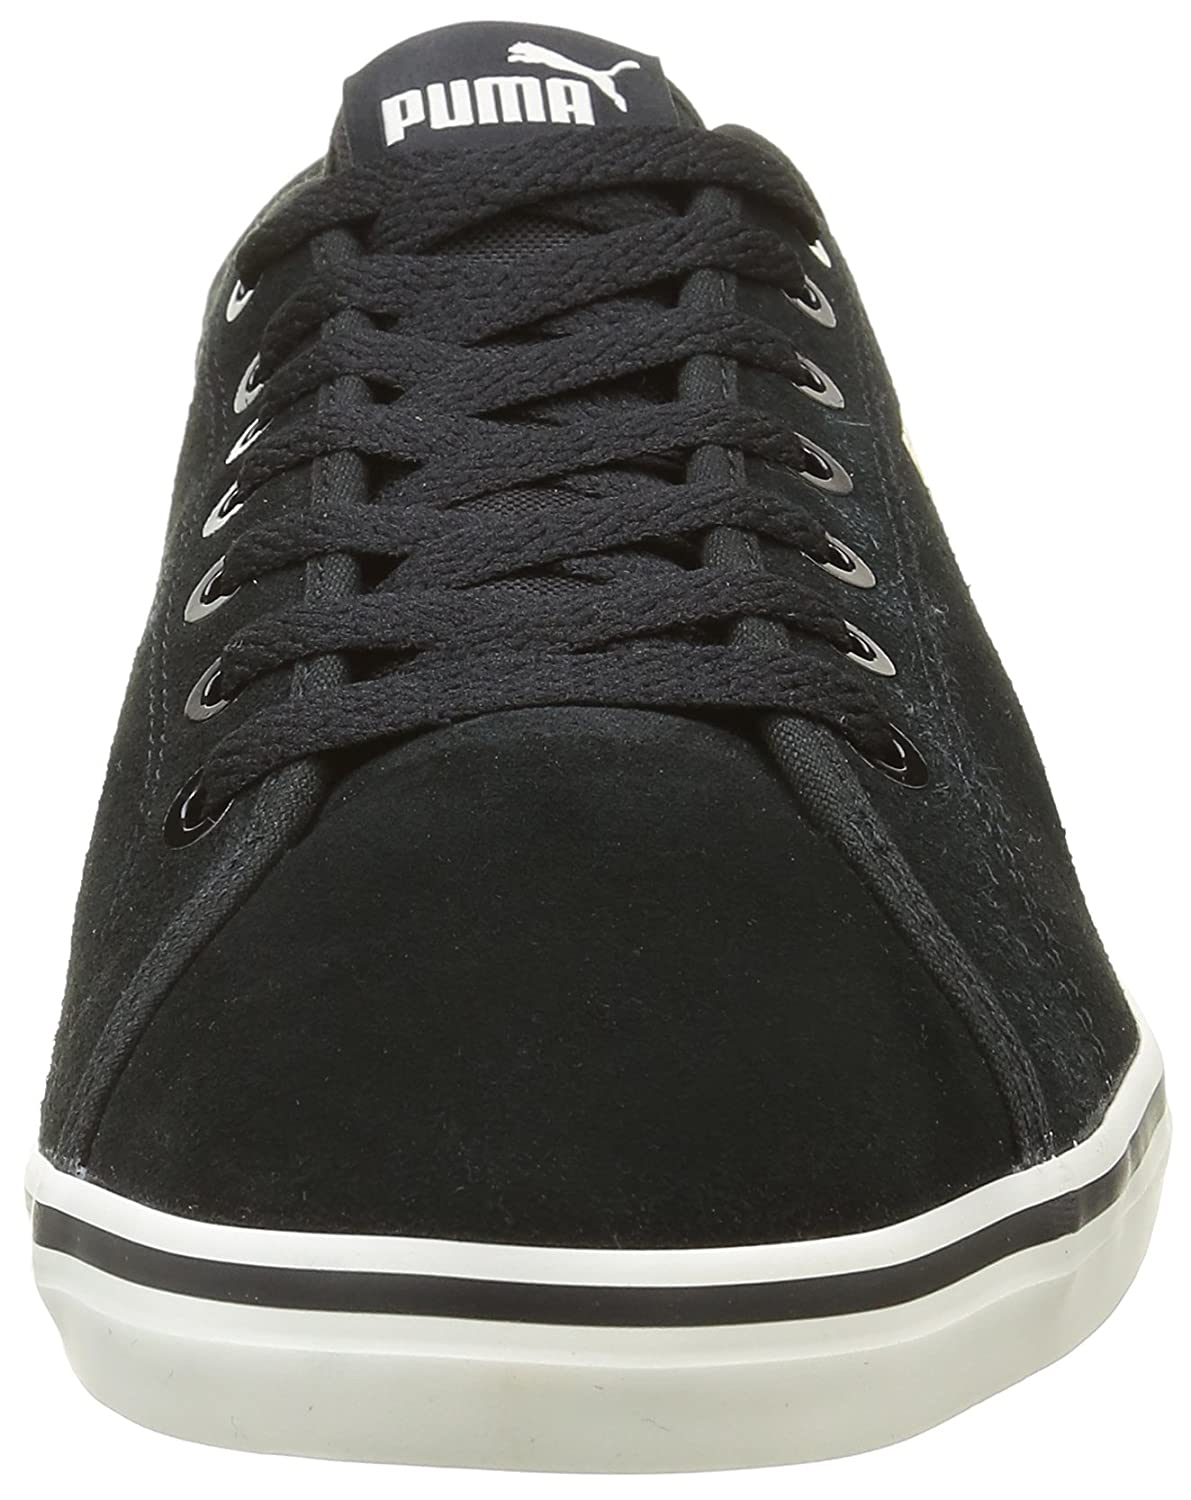 0050d0849d89 Unisex Elsu V2 Perf Sd Black-Black Sneakers  Buy Online at Low Prices in  India - Amazon.in